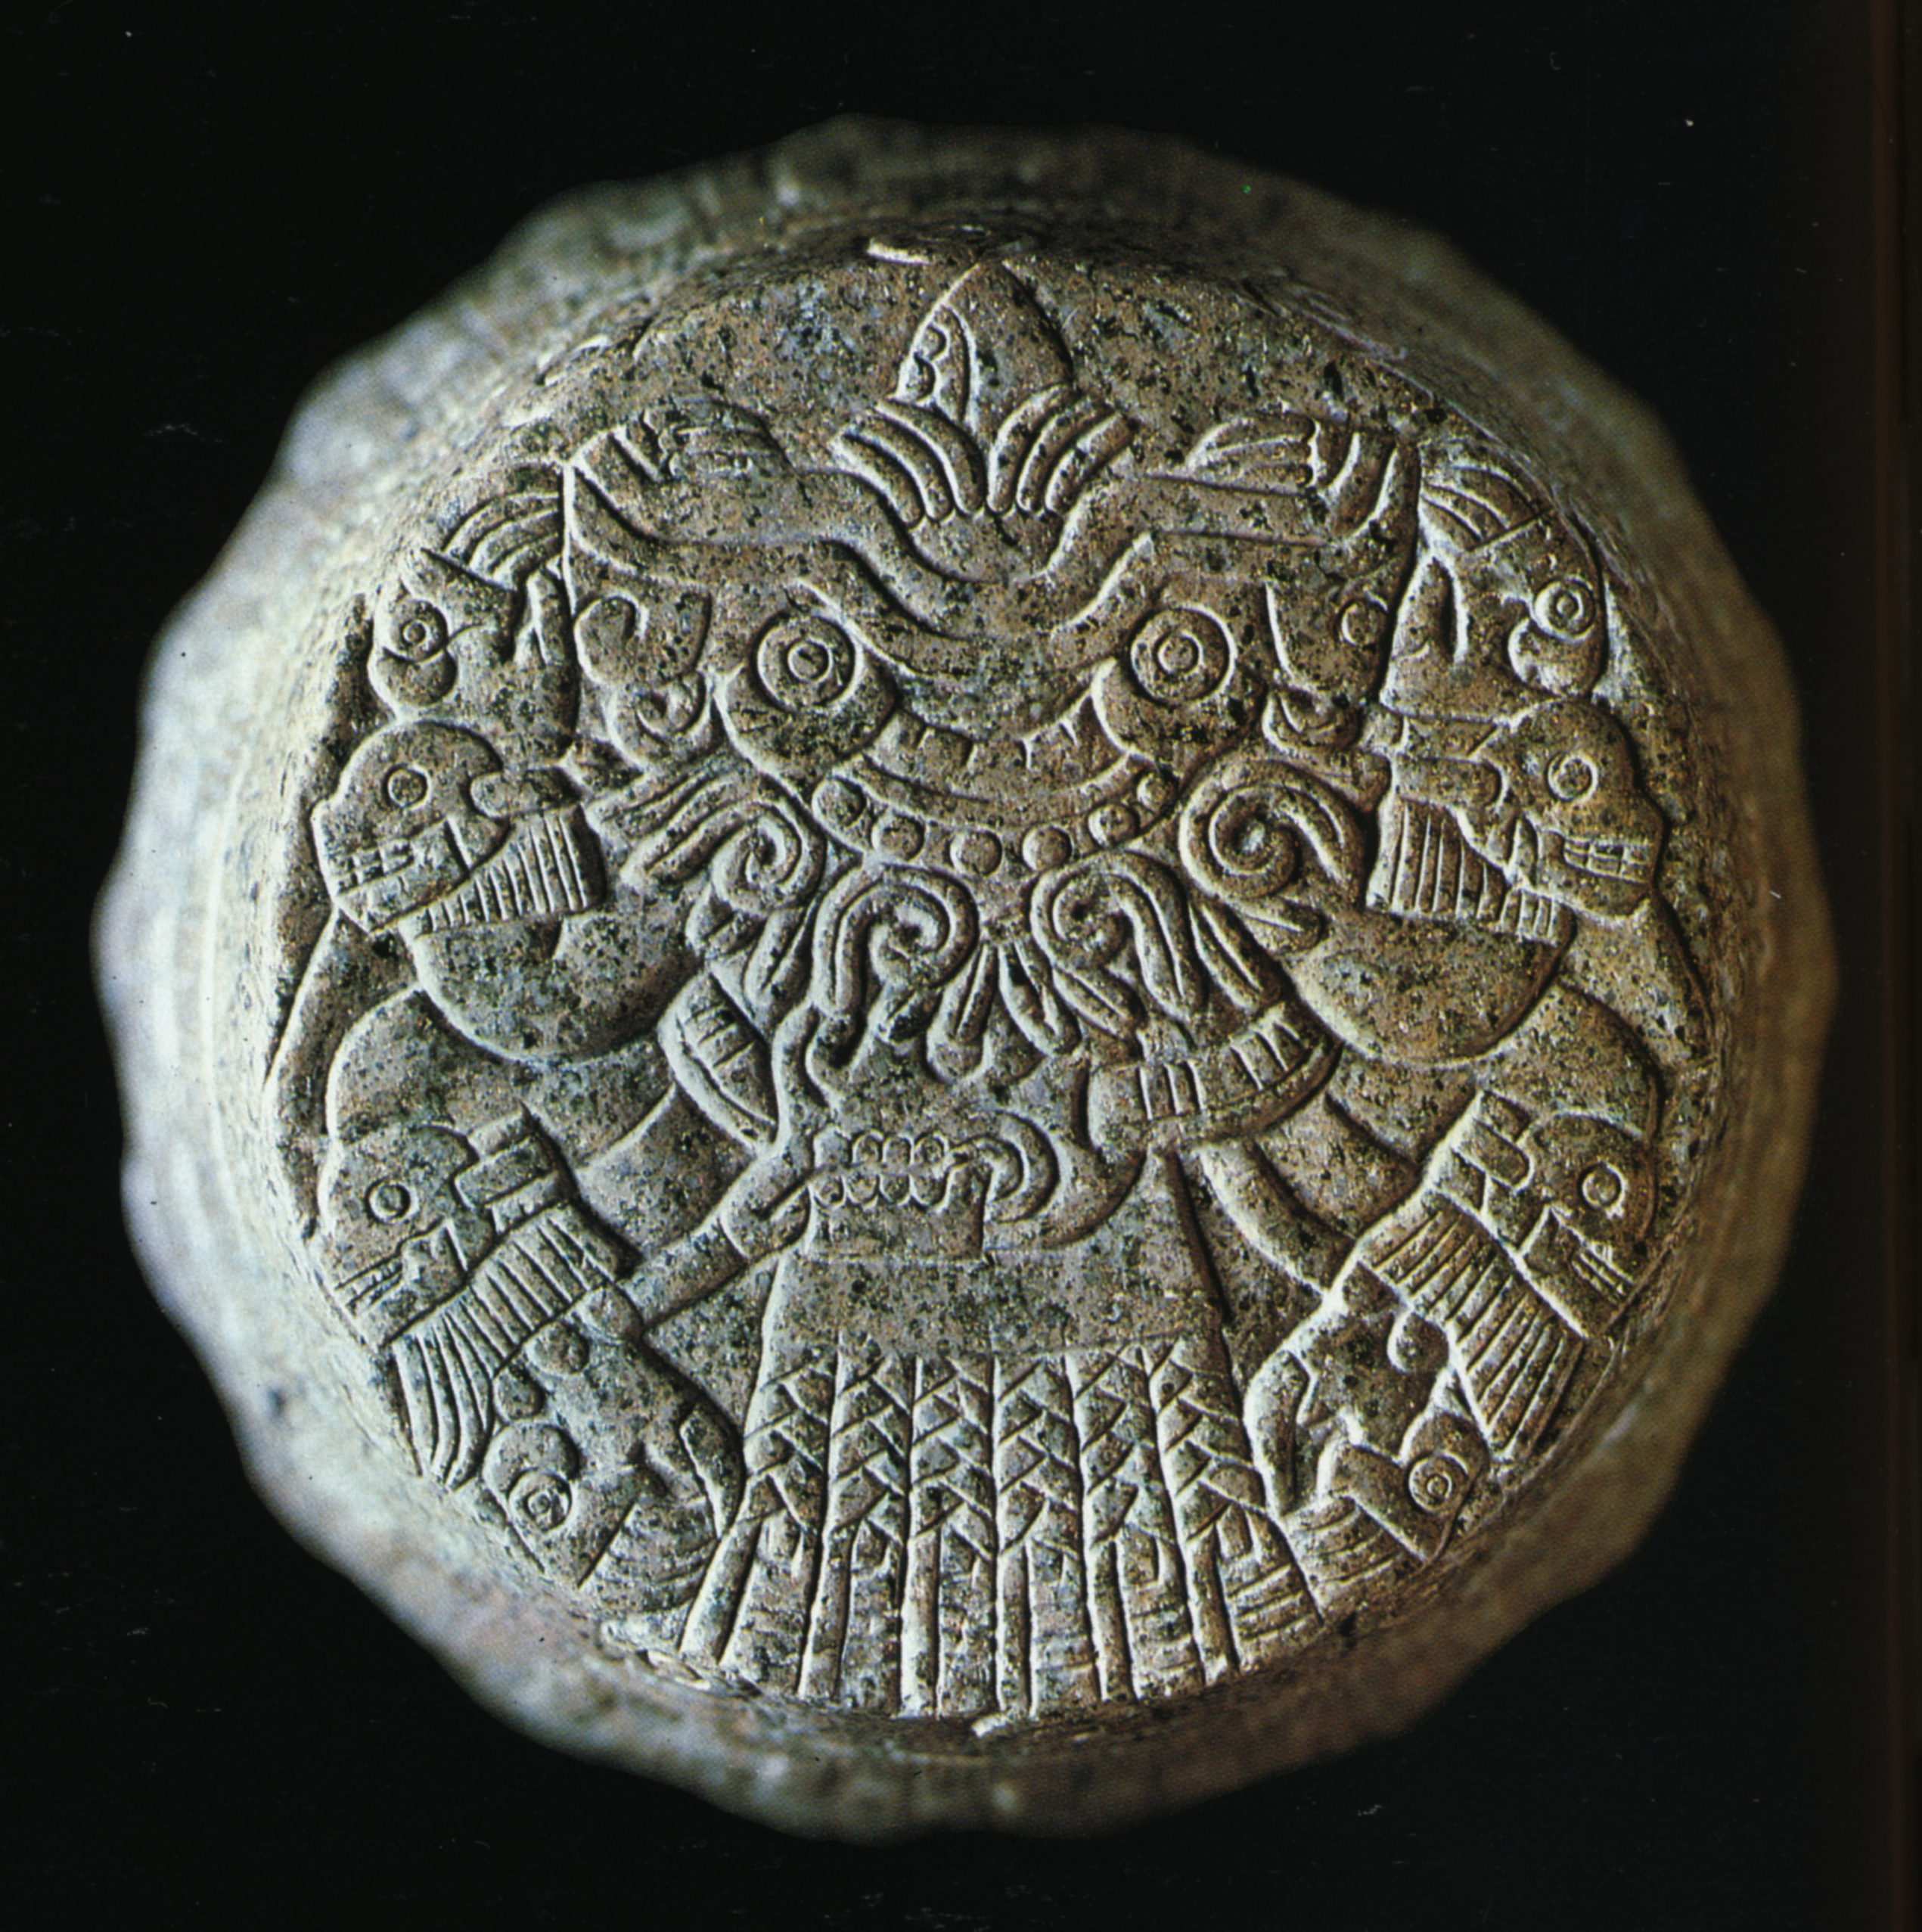 FIGURE 1. Image of Tlaltecuhtli on the base of a greenstone cuauhxicalli  (large stone bowl) in the Ethnologisches Museum, Berlin. The goddess faces upwards, with a flint knife emerging from her open mouth. Her clawed hands and feet have eyes, and she wears human skulls around her wrists and knees.